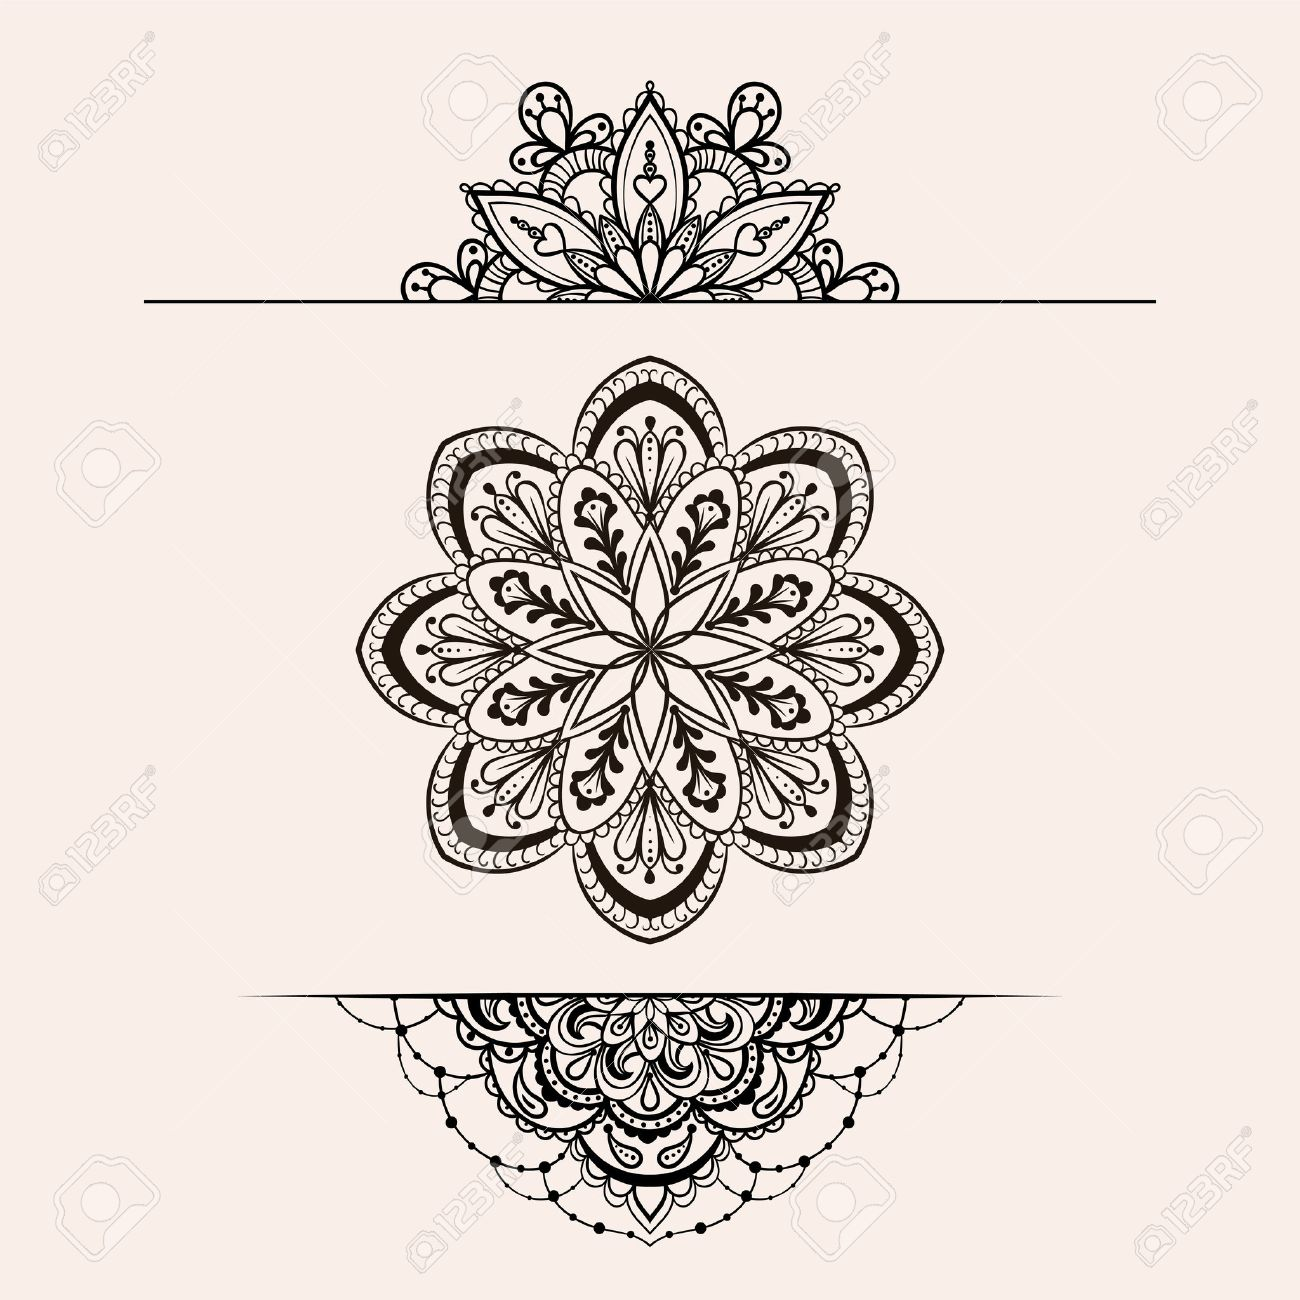 f70dc4352 Vector - Vector henna ethnic mandala set, makhenda boho lace tattoo design  in doodle style. Ornamental tribal patterned illustration for coloring page.